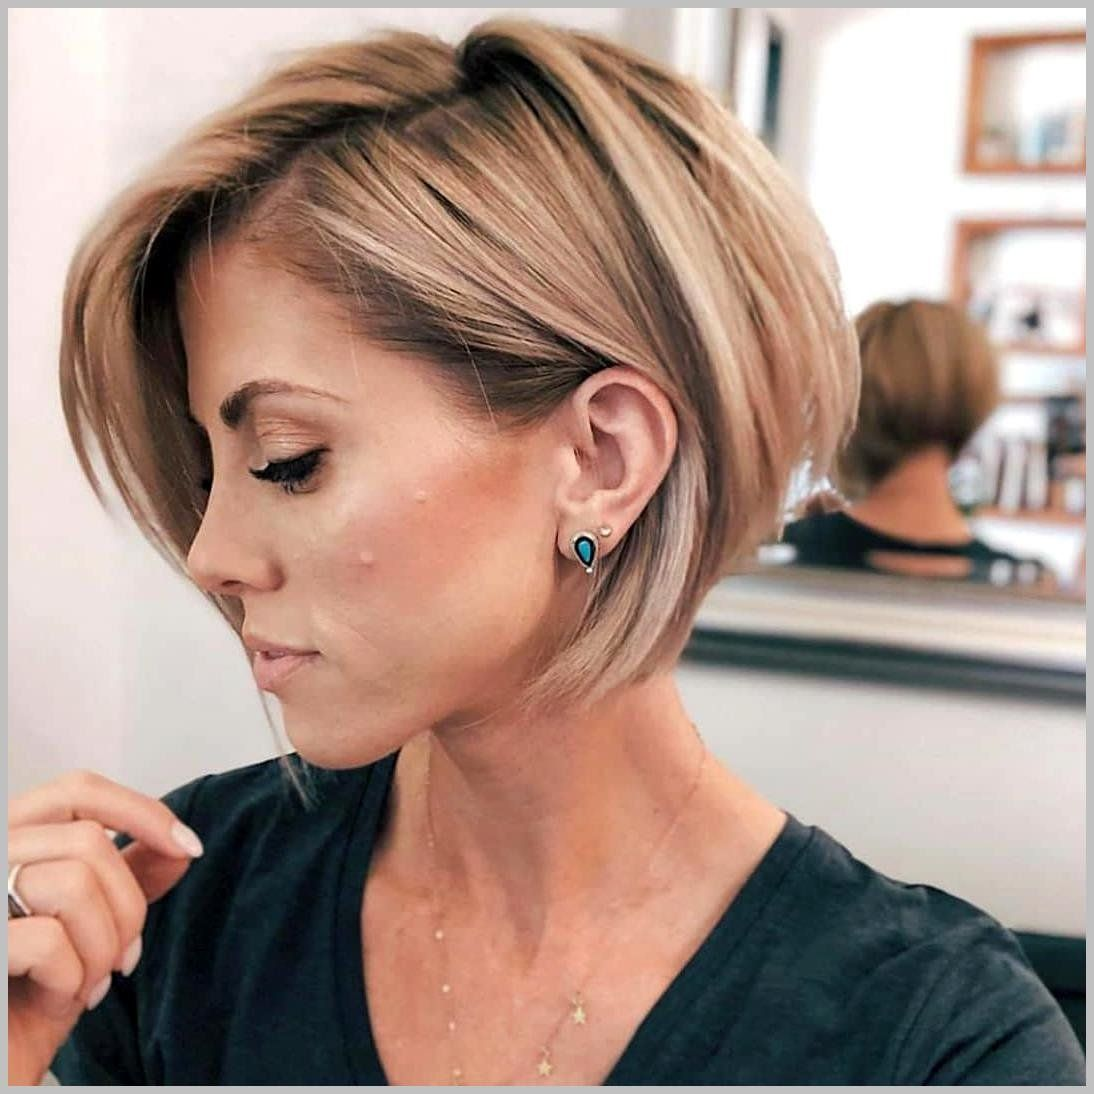 40 Trend Fall Hairstyles For Short Hair Royal Follow Cute Hairstyles For Short Hair Short Hair Styles Short Hair Trends